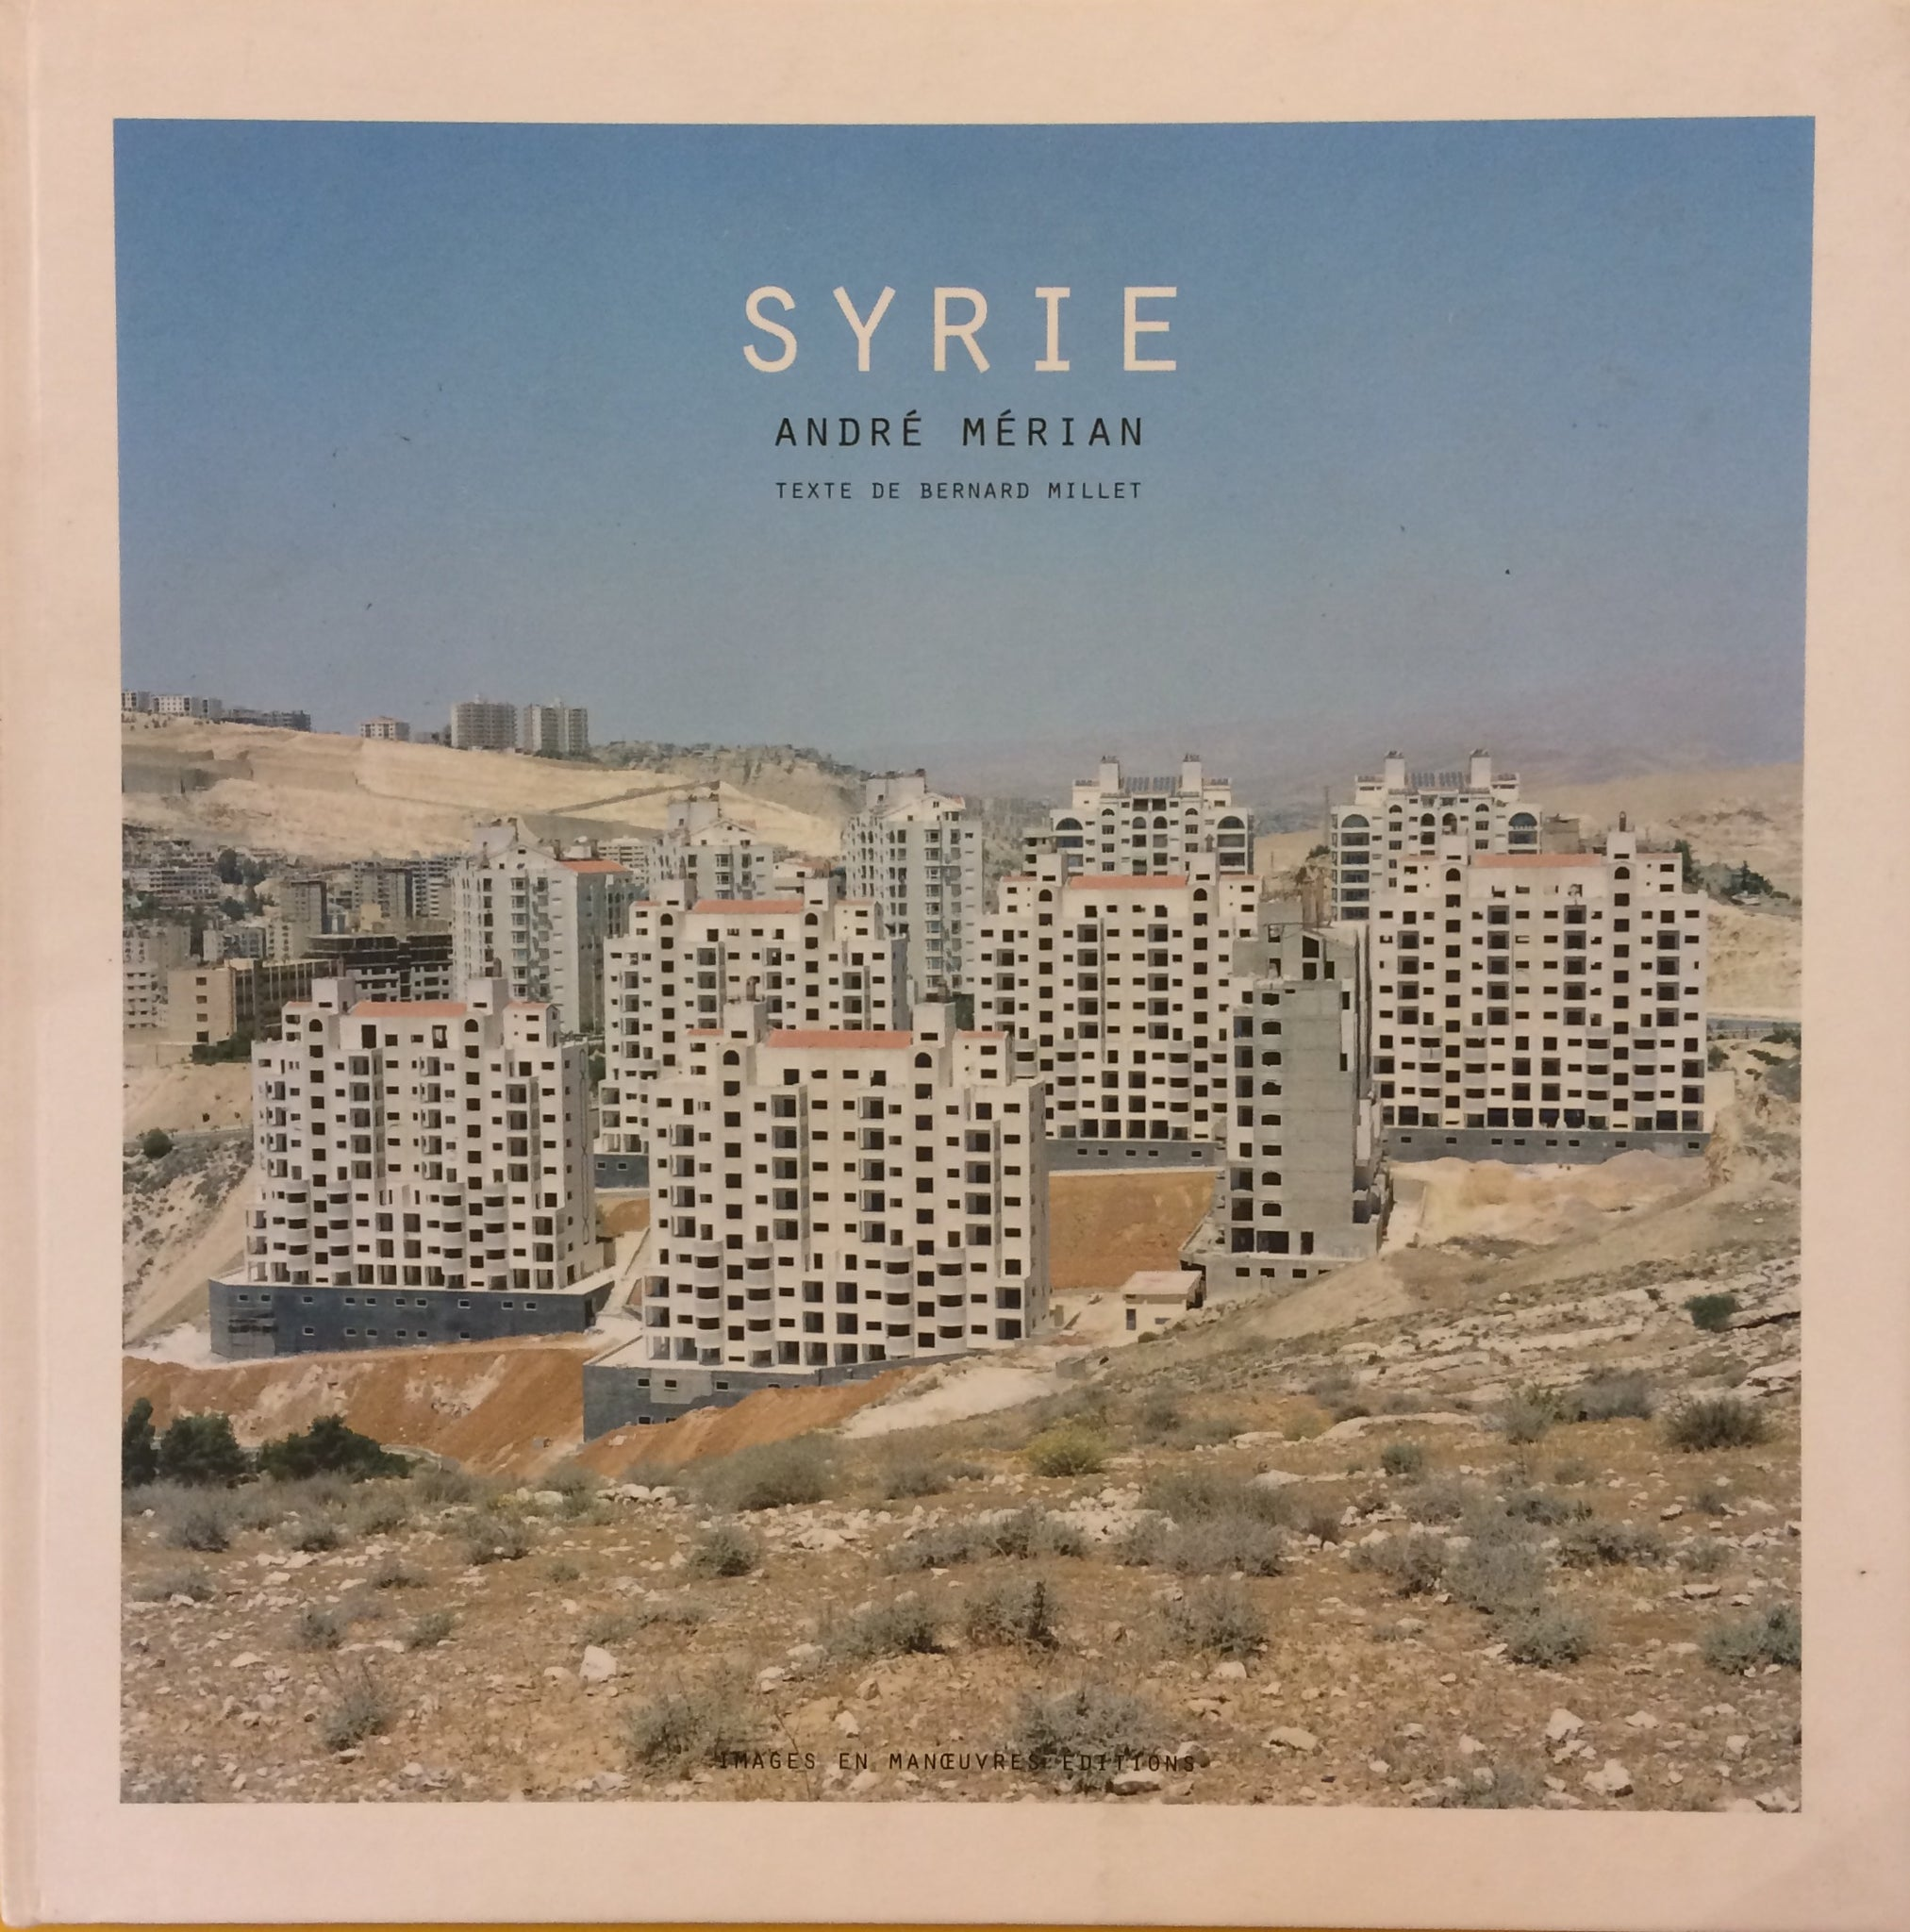 Syrie, André Mérian (Signed) - The Library Project